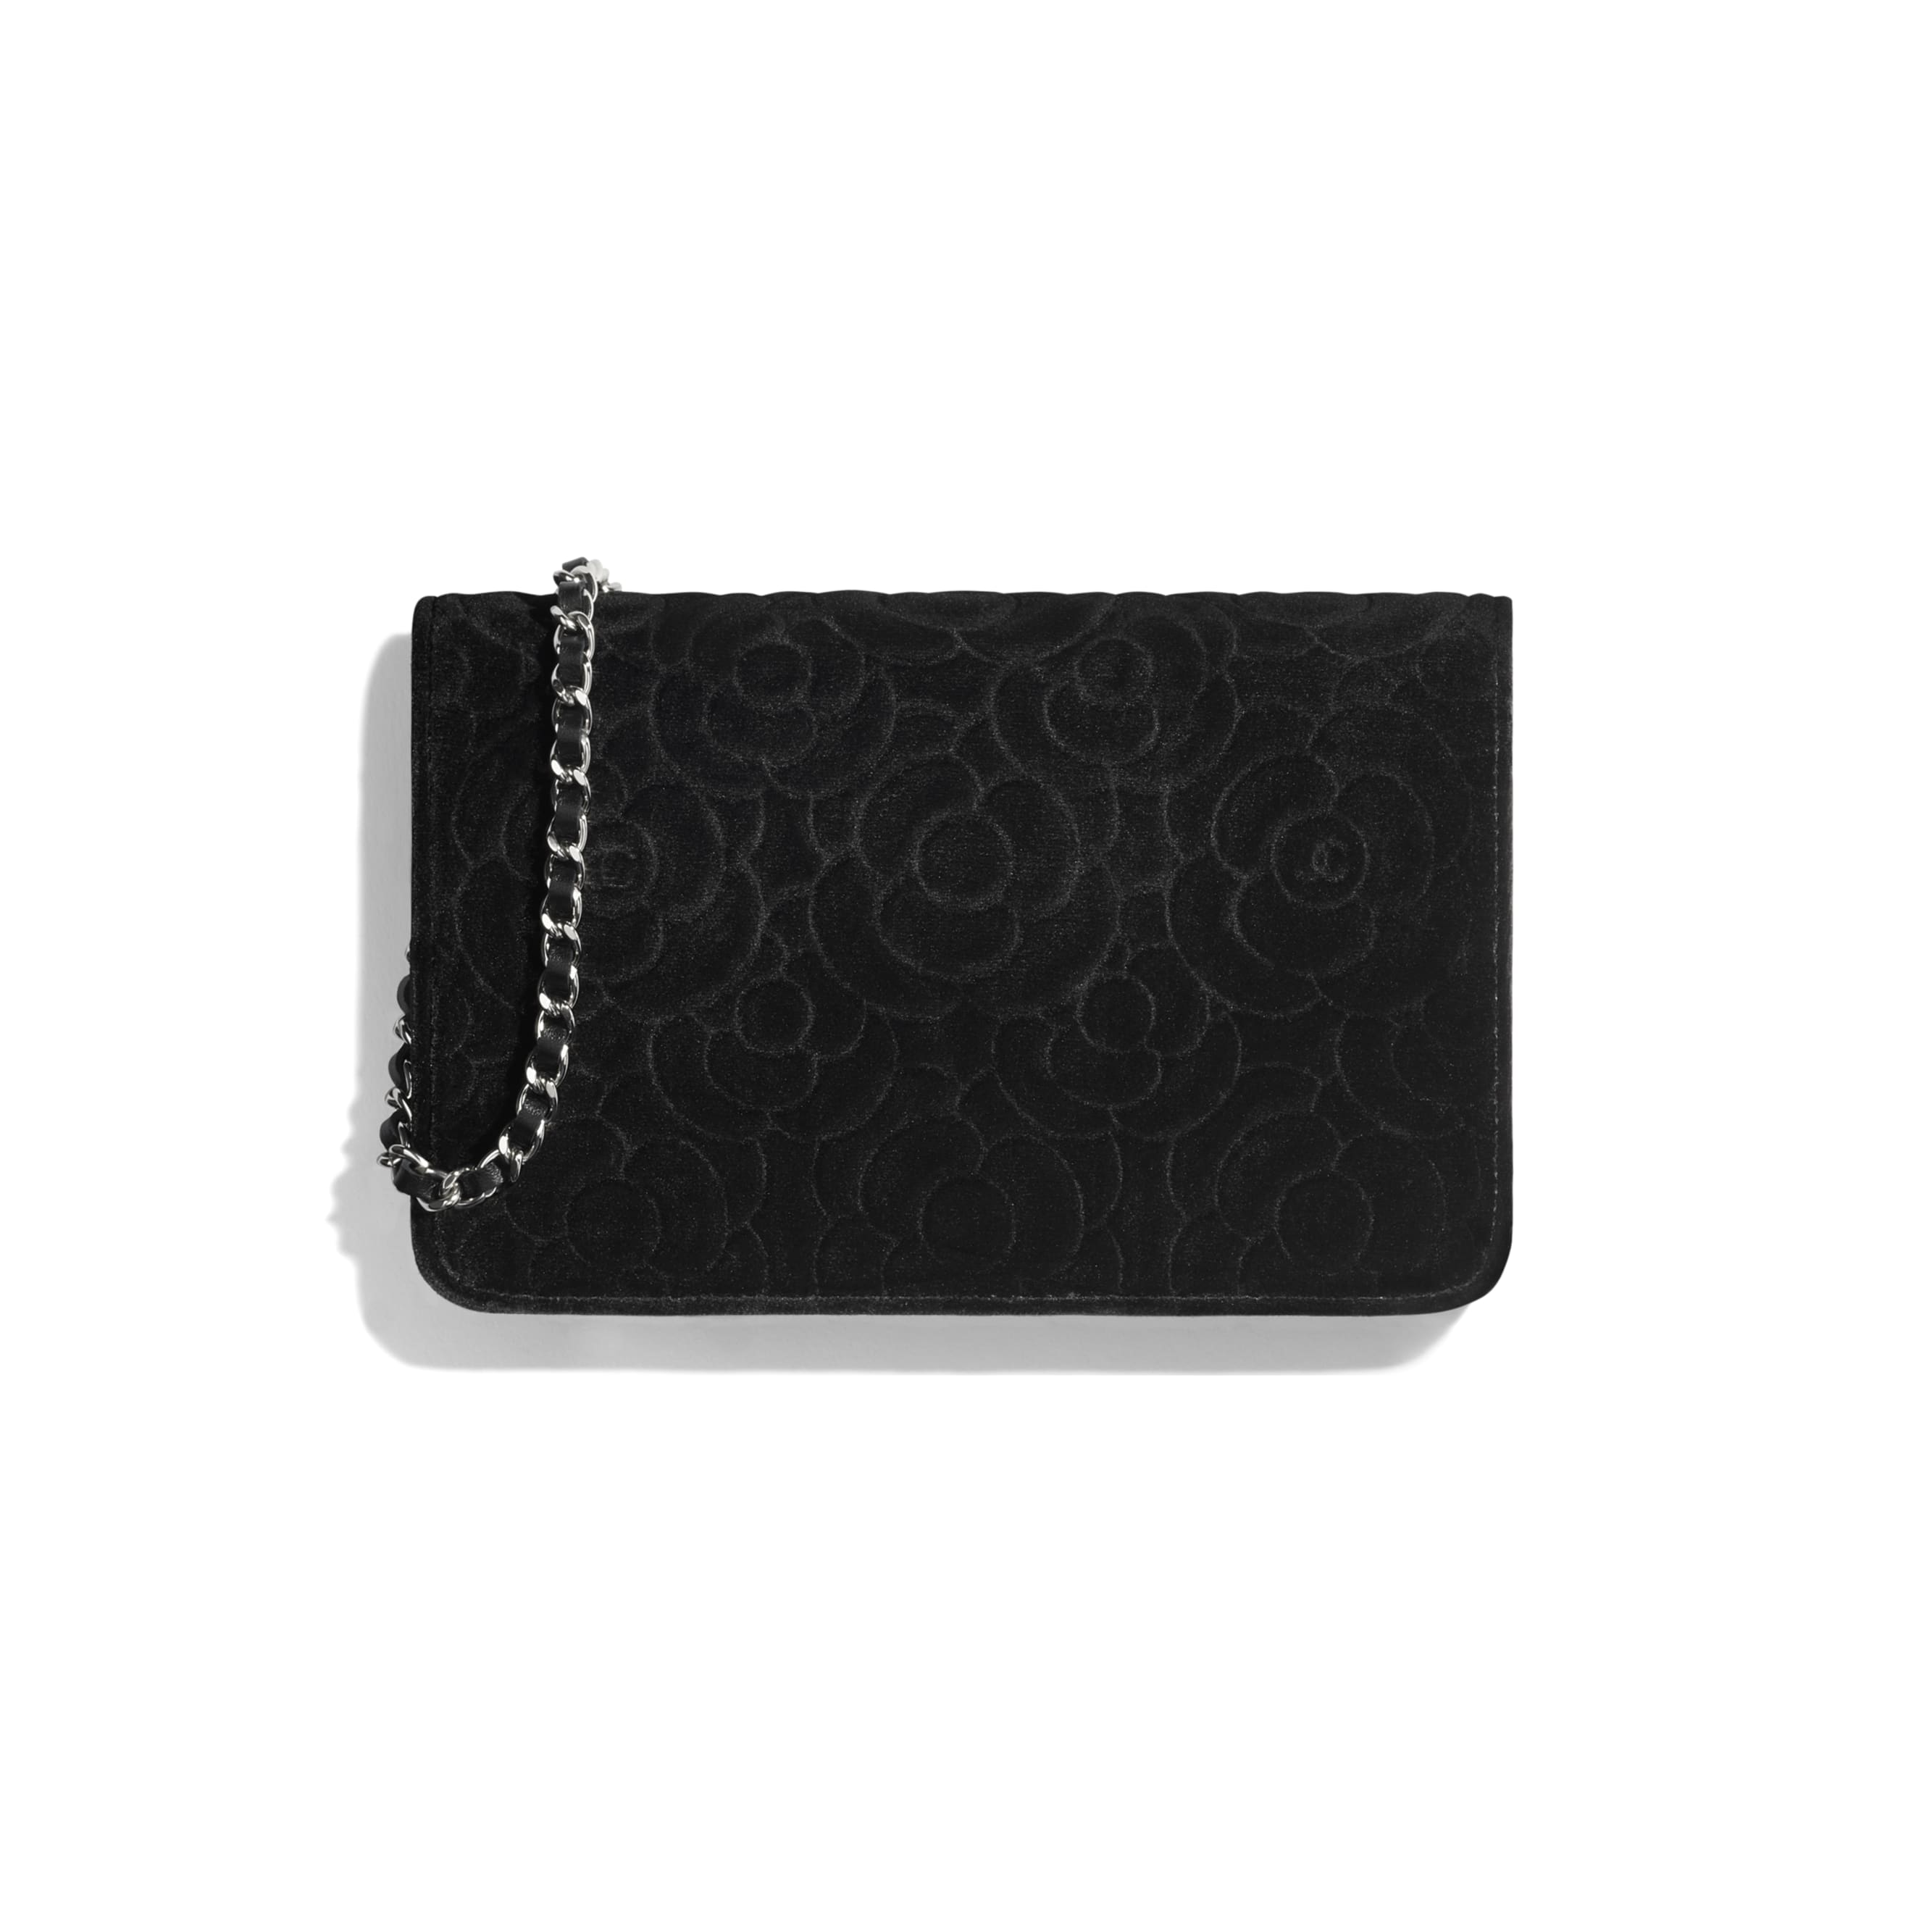 Wallet On Chain - Black - Velvet & Silver-Tone Metal - CHANEL - Alternative view - see standard sized version